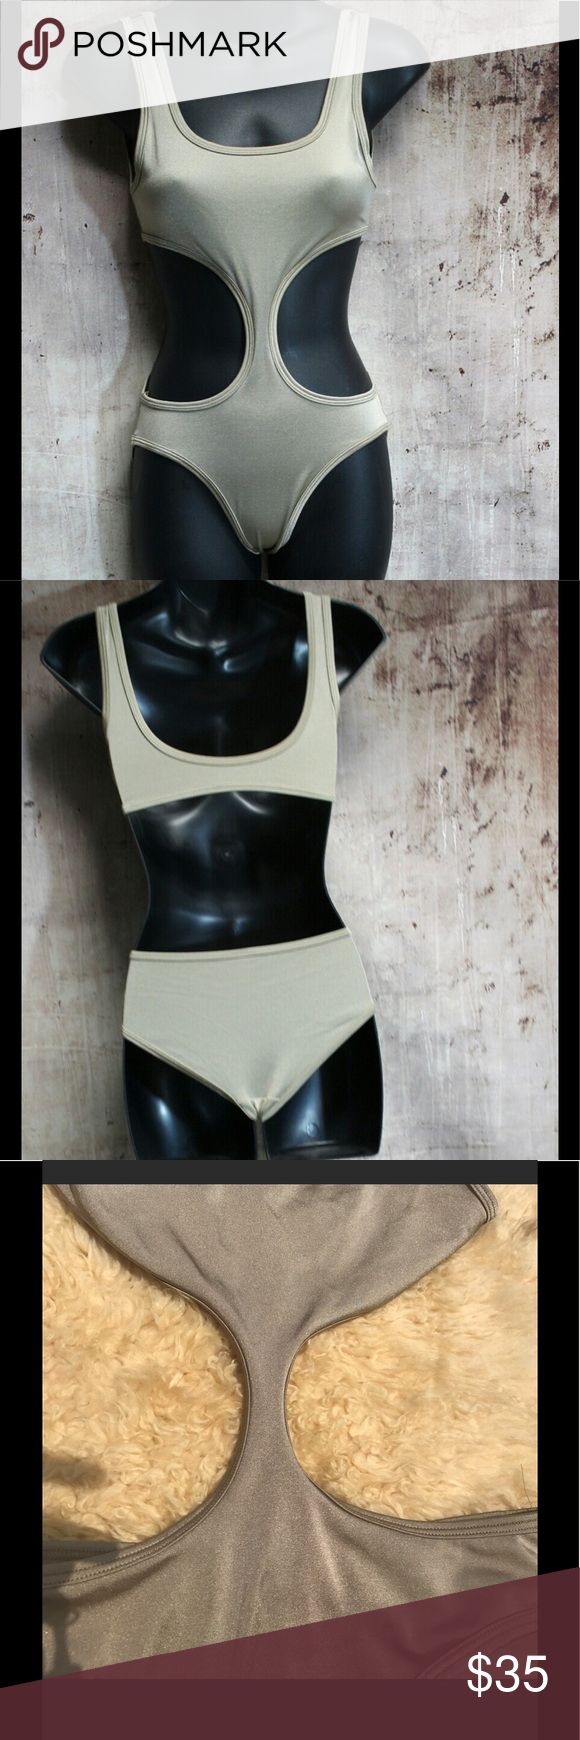 AA light gold cut out swimsuit Brand new never worn . With out tags . Size small. Super gorgeous Light nude shimmer gold color. American Apparel Swim One Pieces